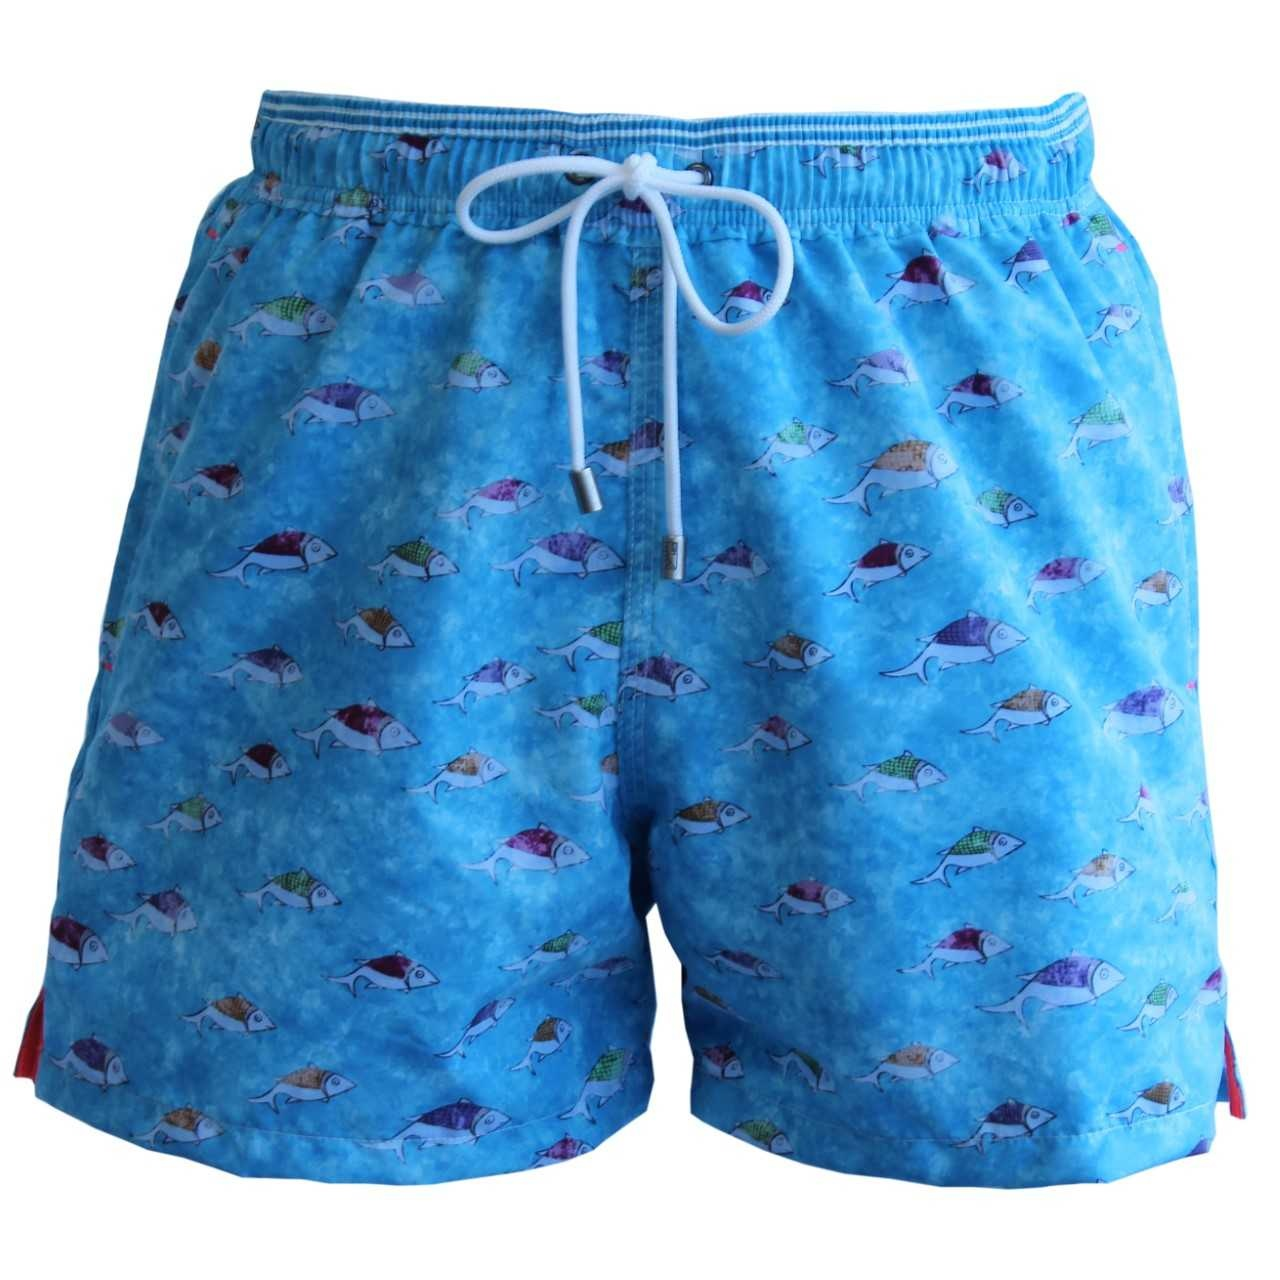 a51a0ffe2d Mens Swimming Shorts, Shoal - Turquoise - Oliver Brown